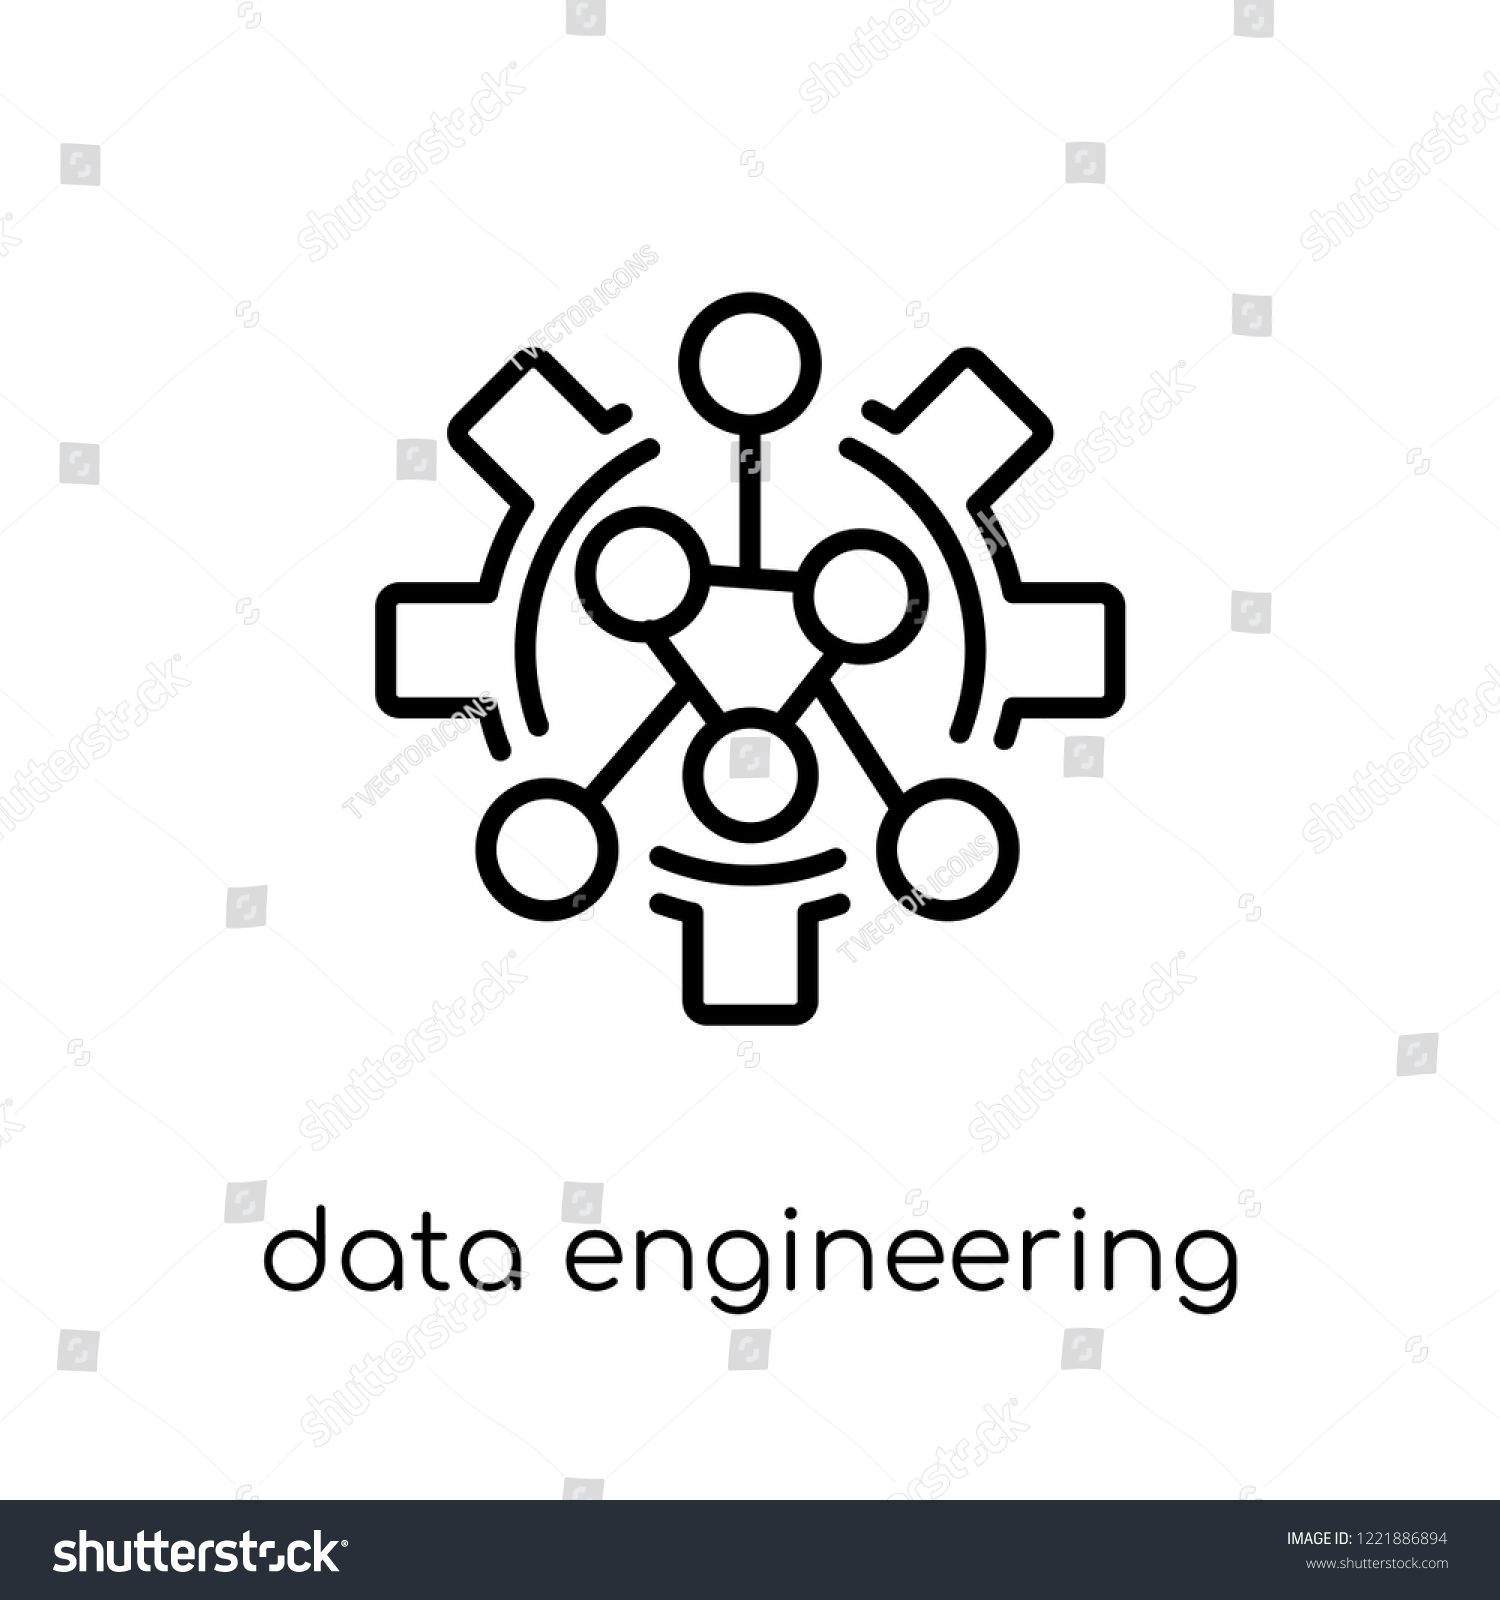 Data Engineering Icon Trendy Modern Flat Stock Vector